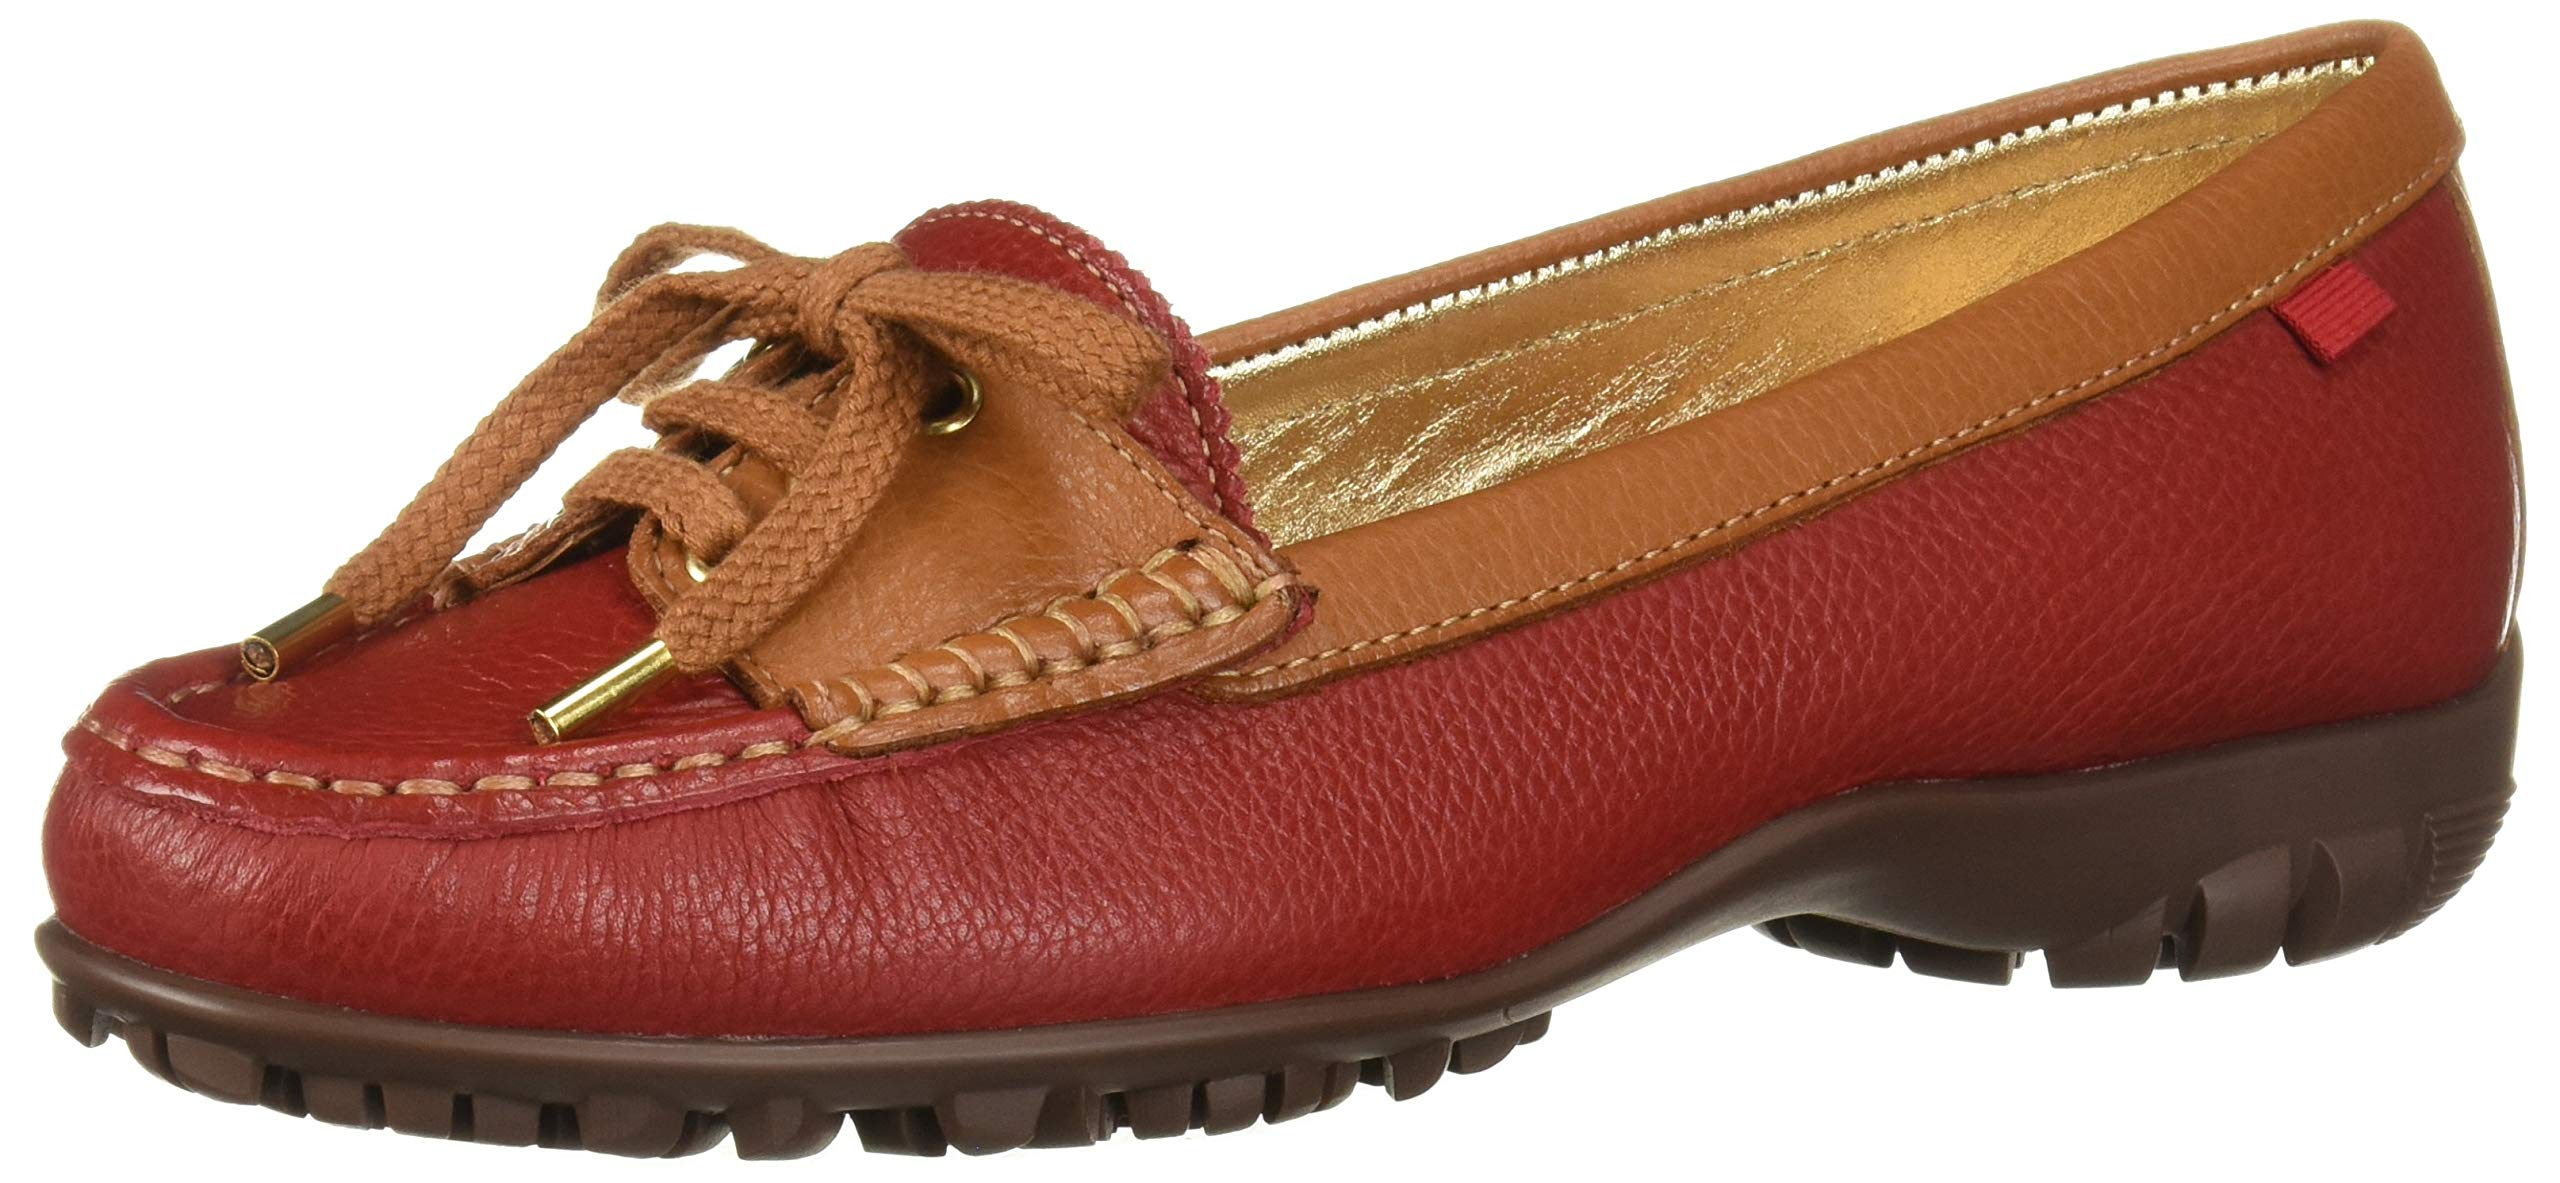 MARC JOSEPH NEW YORK Womens Leather Made in Brazil Liberty Golf Shoe, red Grainy, 10 M US by MARC JOSEPH NEW YORK